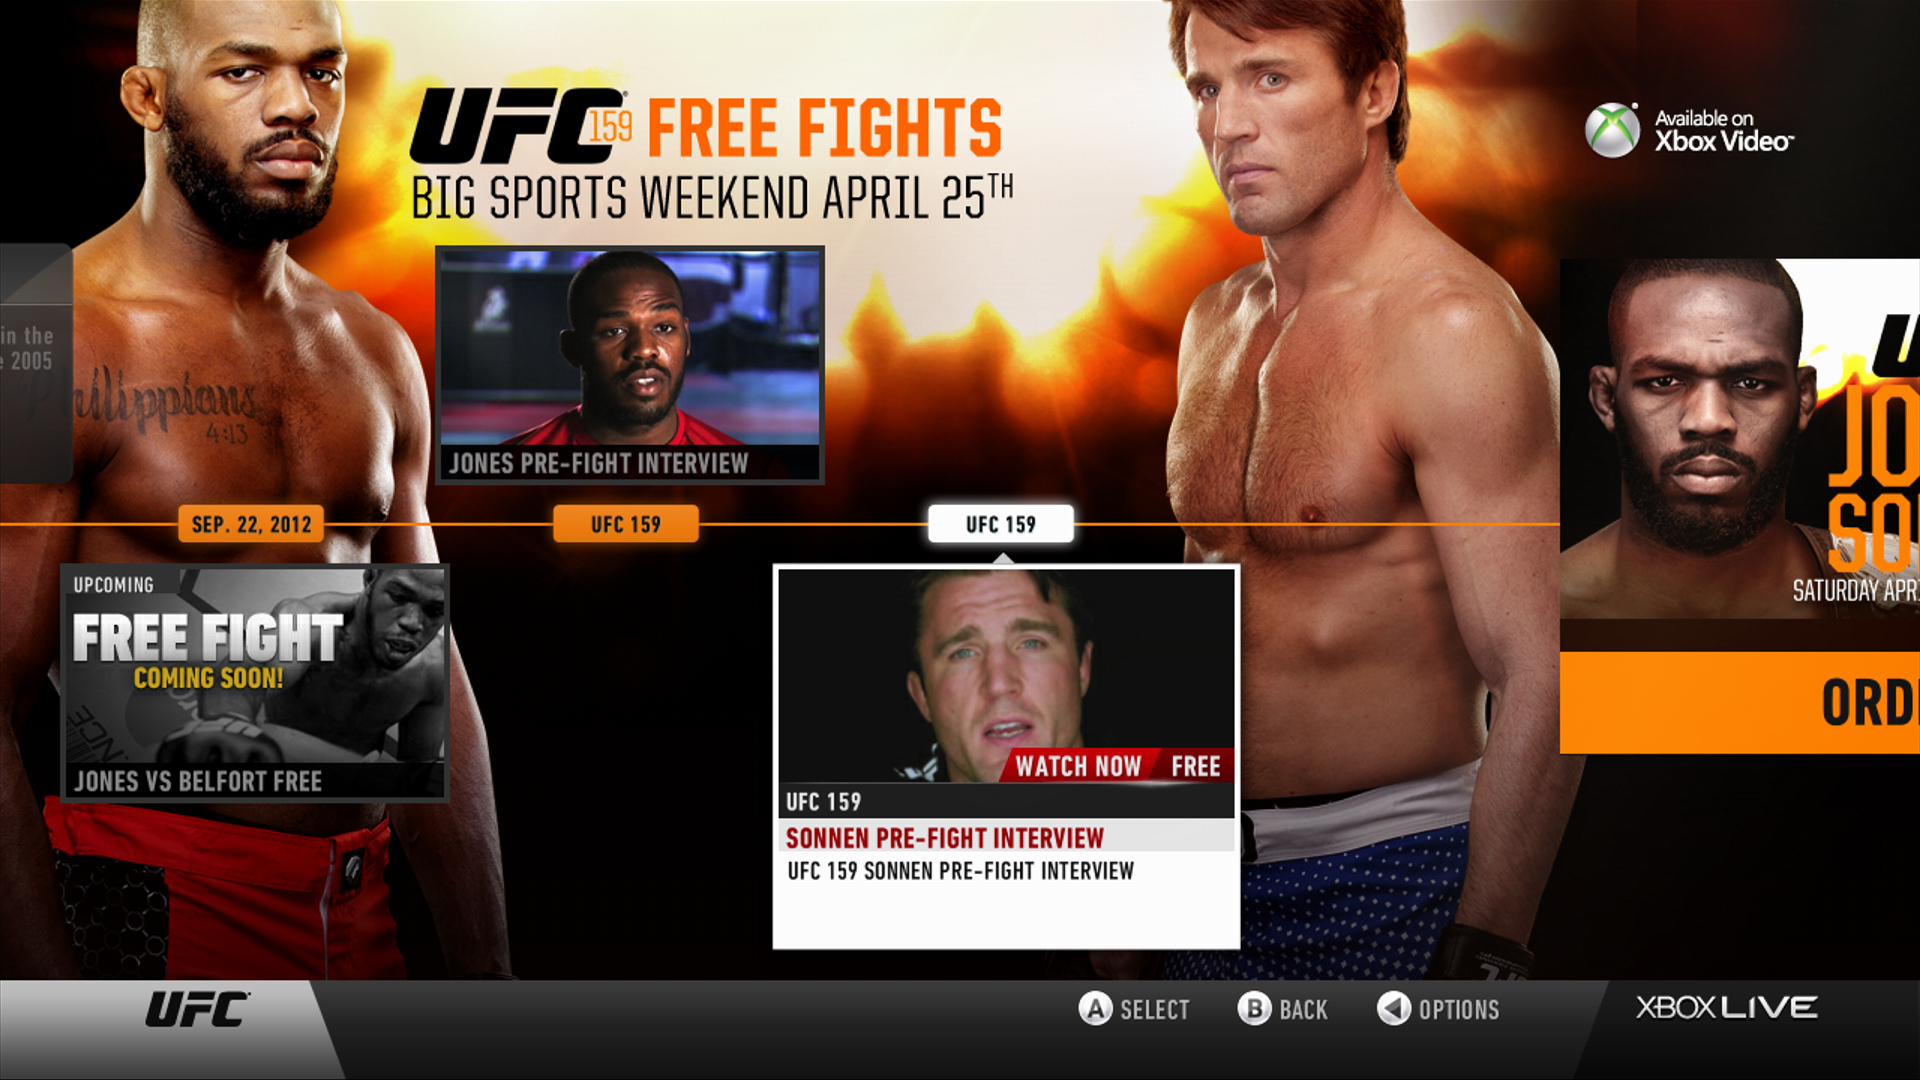 During Big Sports weekend all sports apps from April 25th-28th will be unlocked for both Free and Gold members in the US and Canada, including ESPN, UFC, MLB.TV, NBA Game Time, and NHL Game Center.